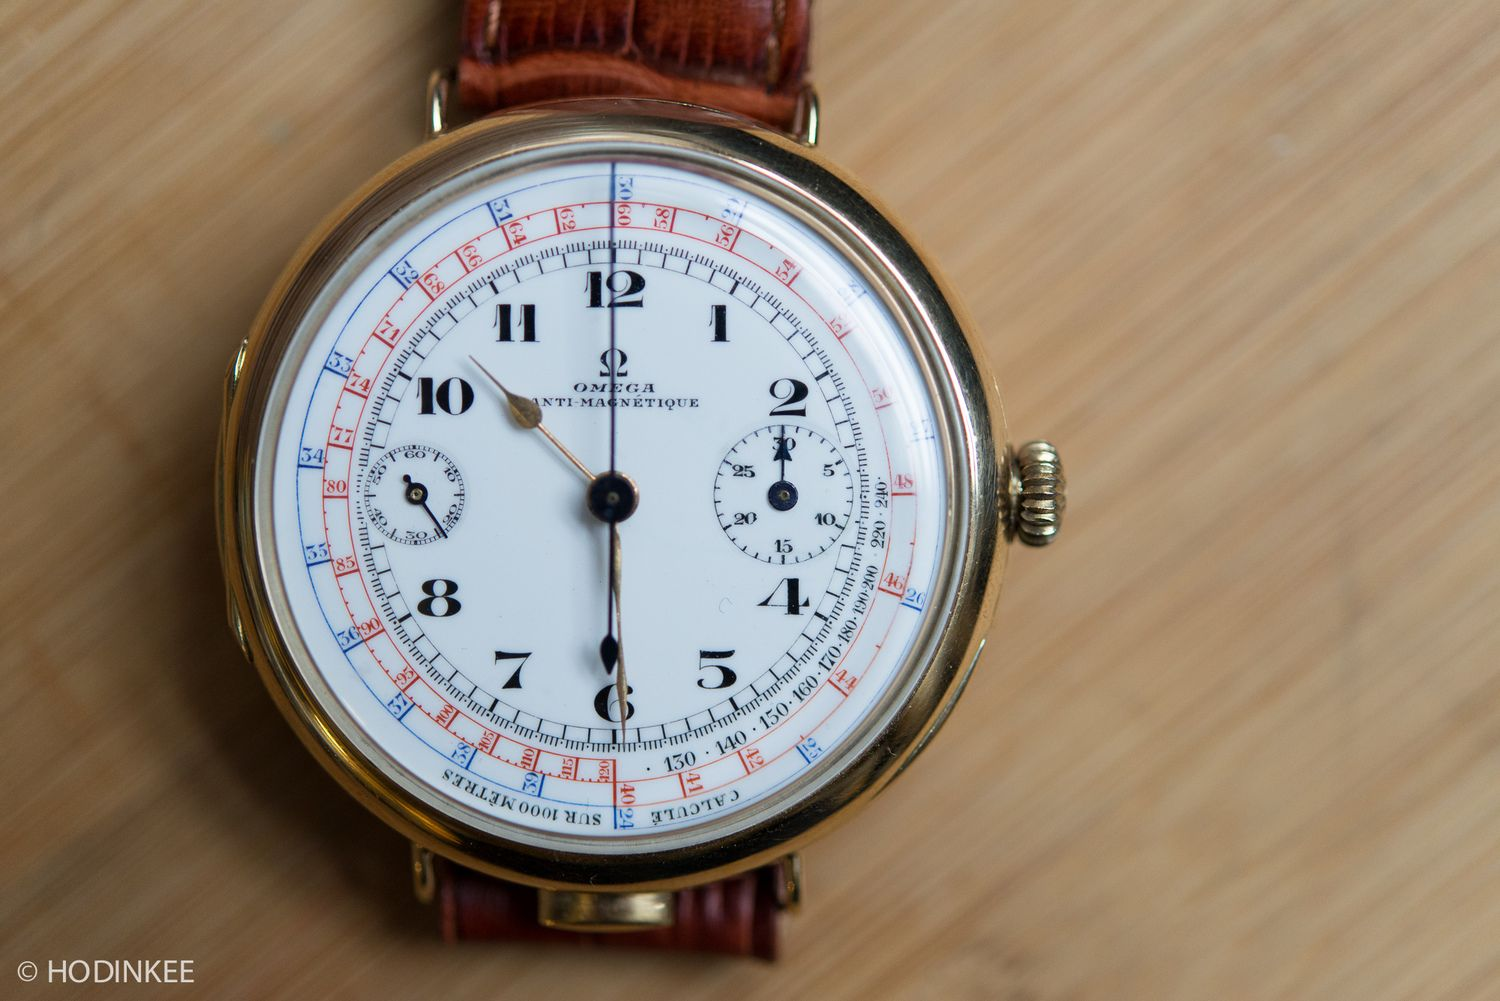 talking watches alfredo paramico watches 1920s and omega talking watches alfredo paramico